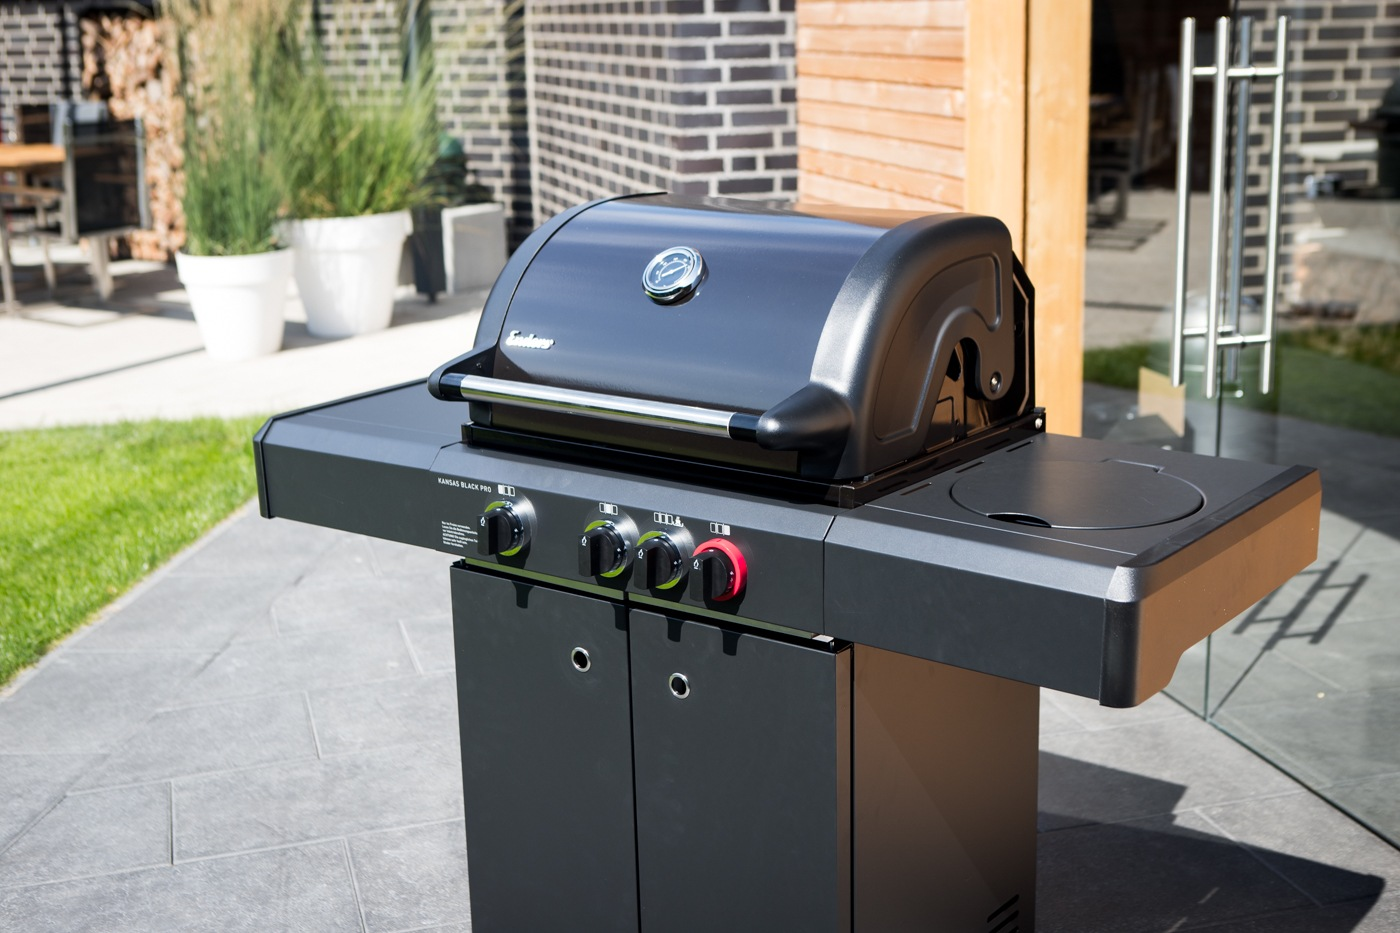 Enders Gasgrill Kansas : Testbericht enders kansas gasgrill black pro k turbo vorstellung